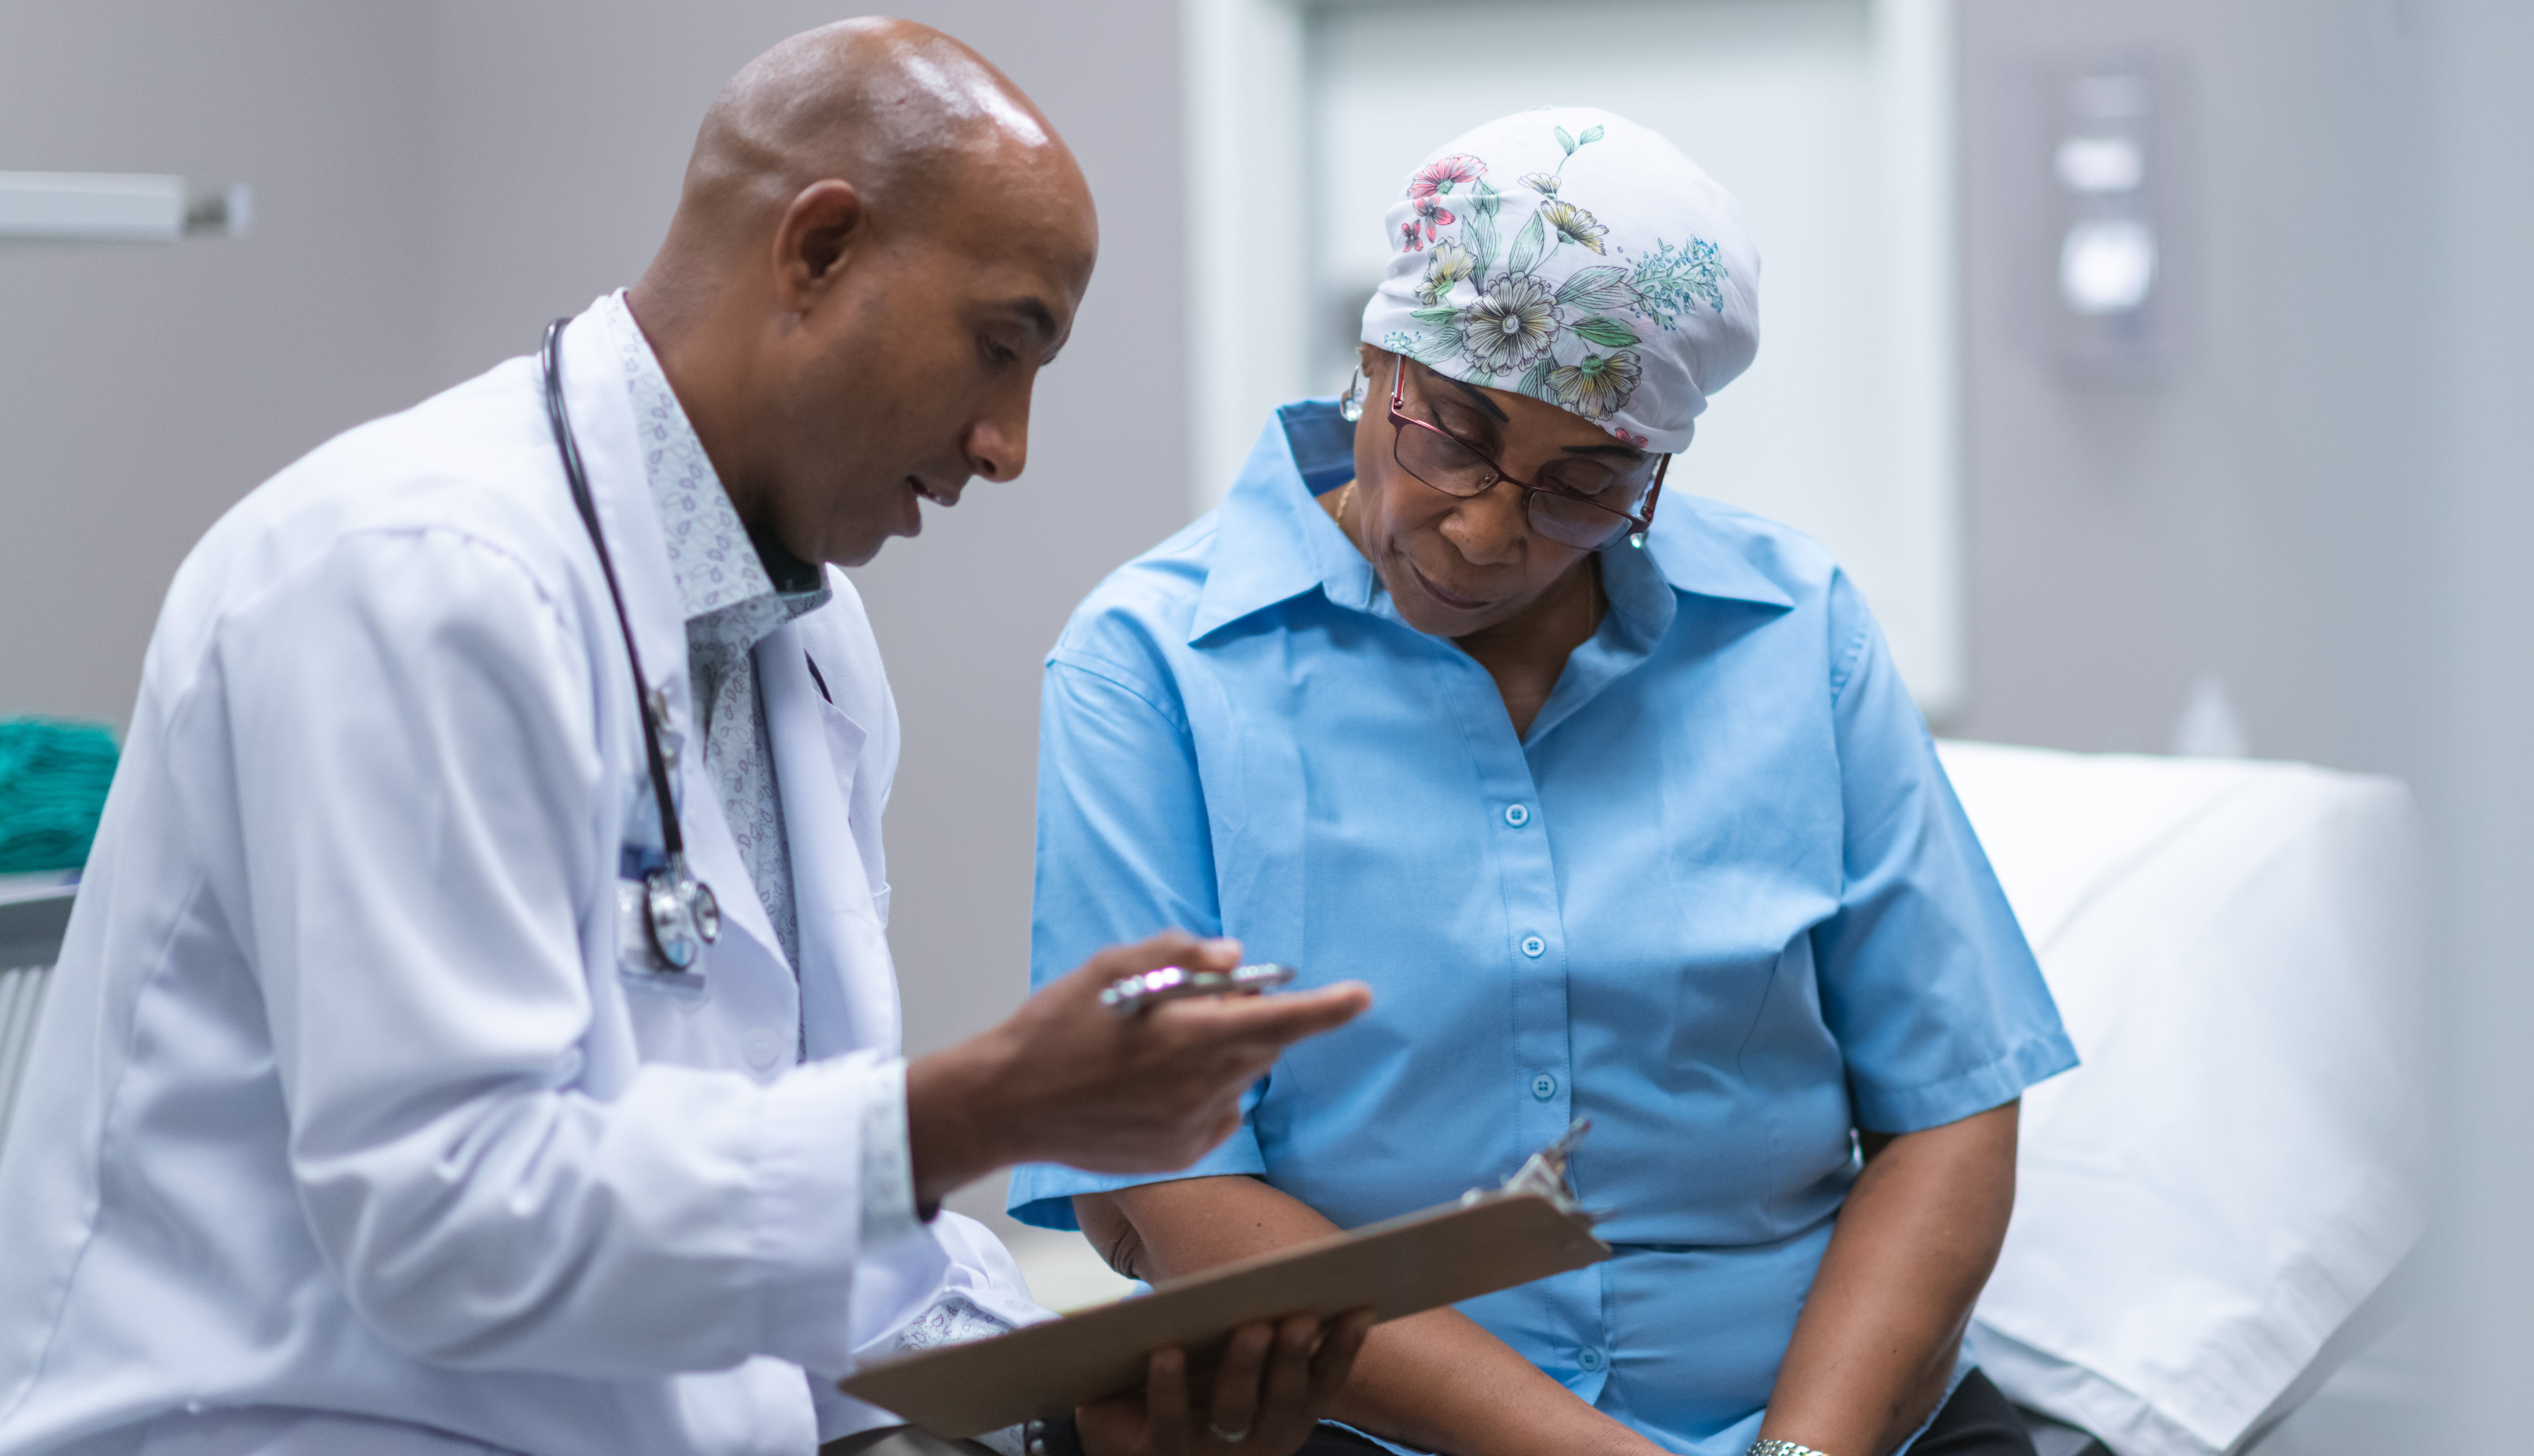 an african american woman with cancer talking to her doctor, who is also african american